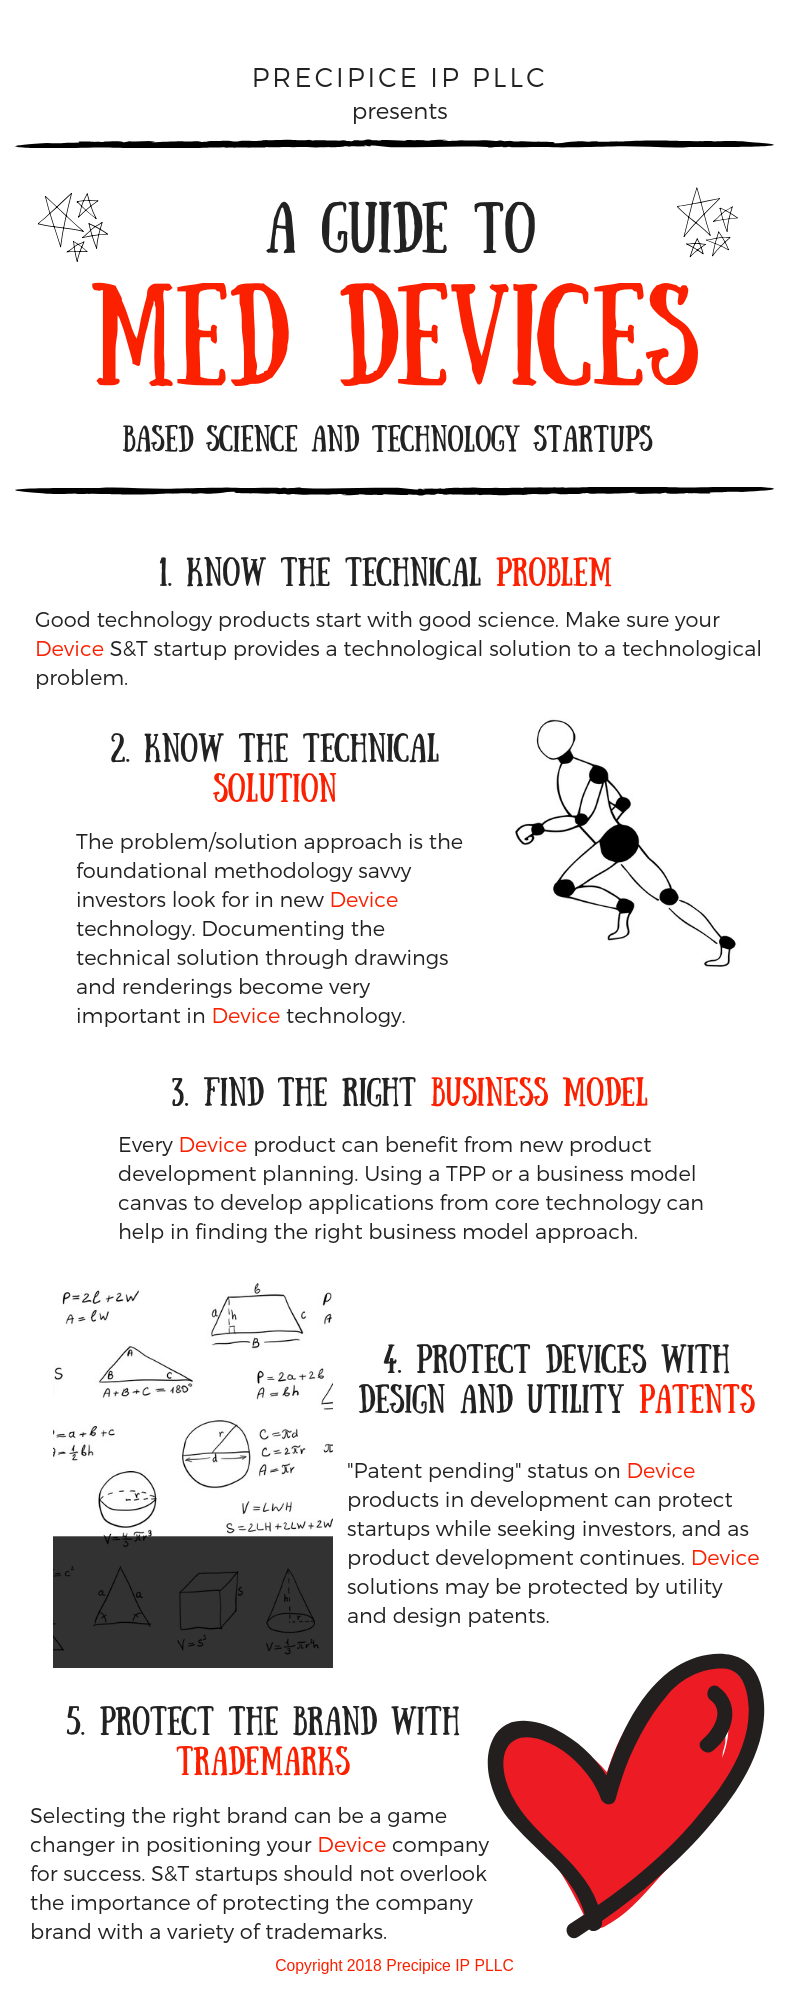 Precipice IP PLLC Infographic-Medical Devices